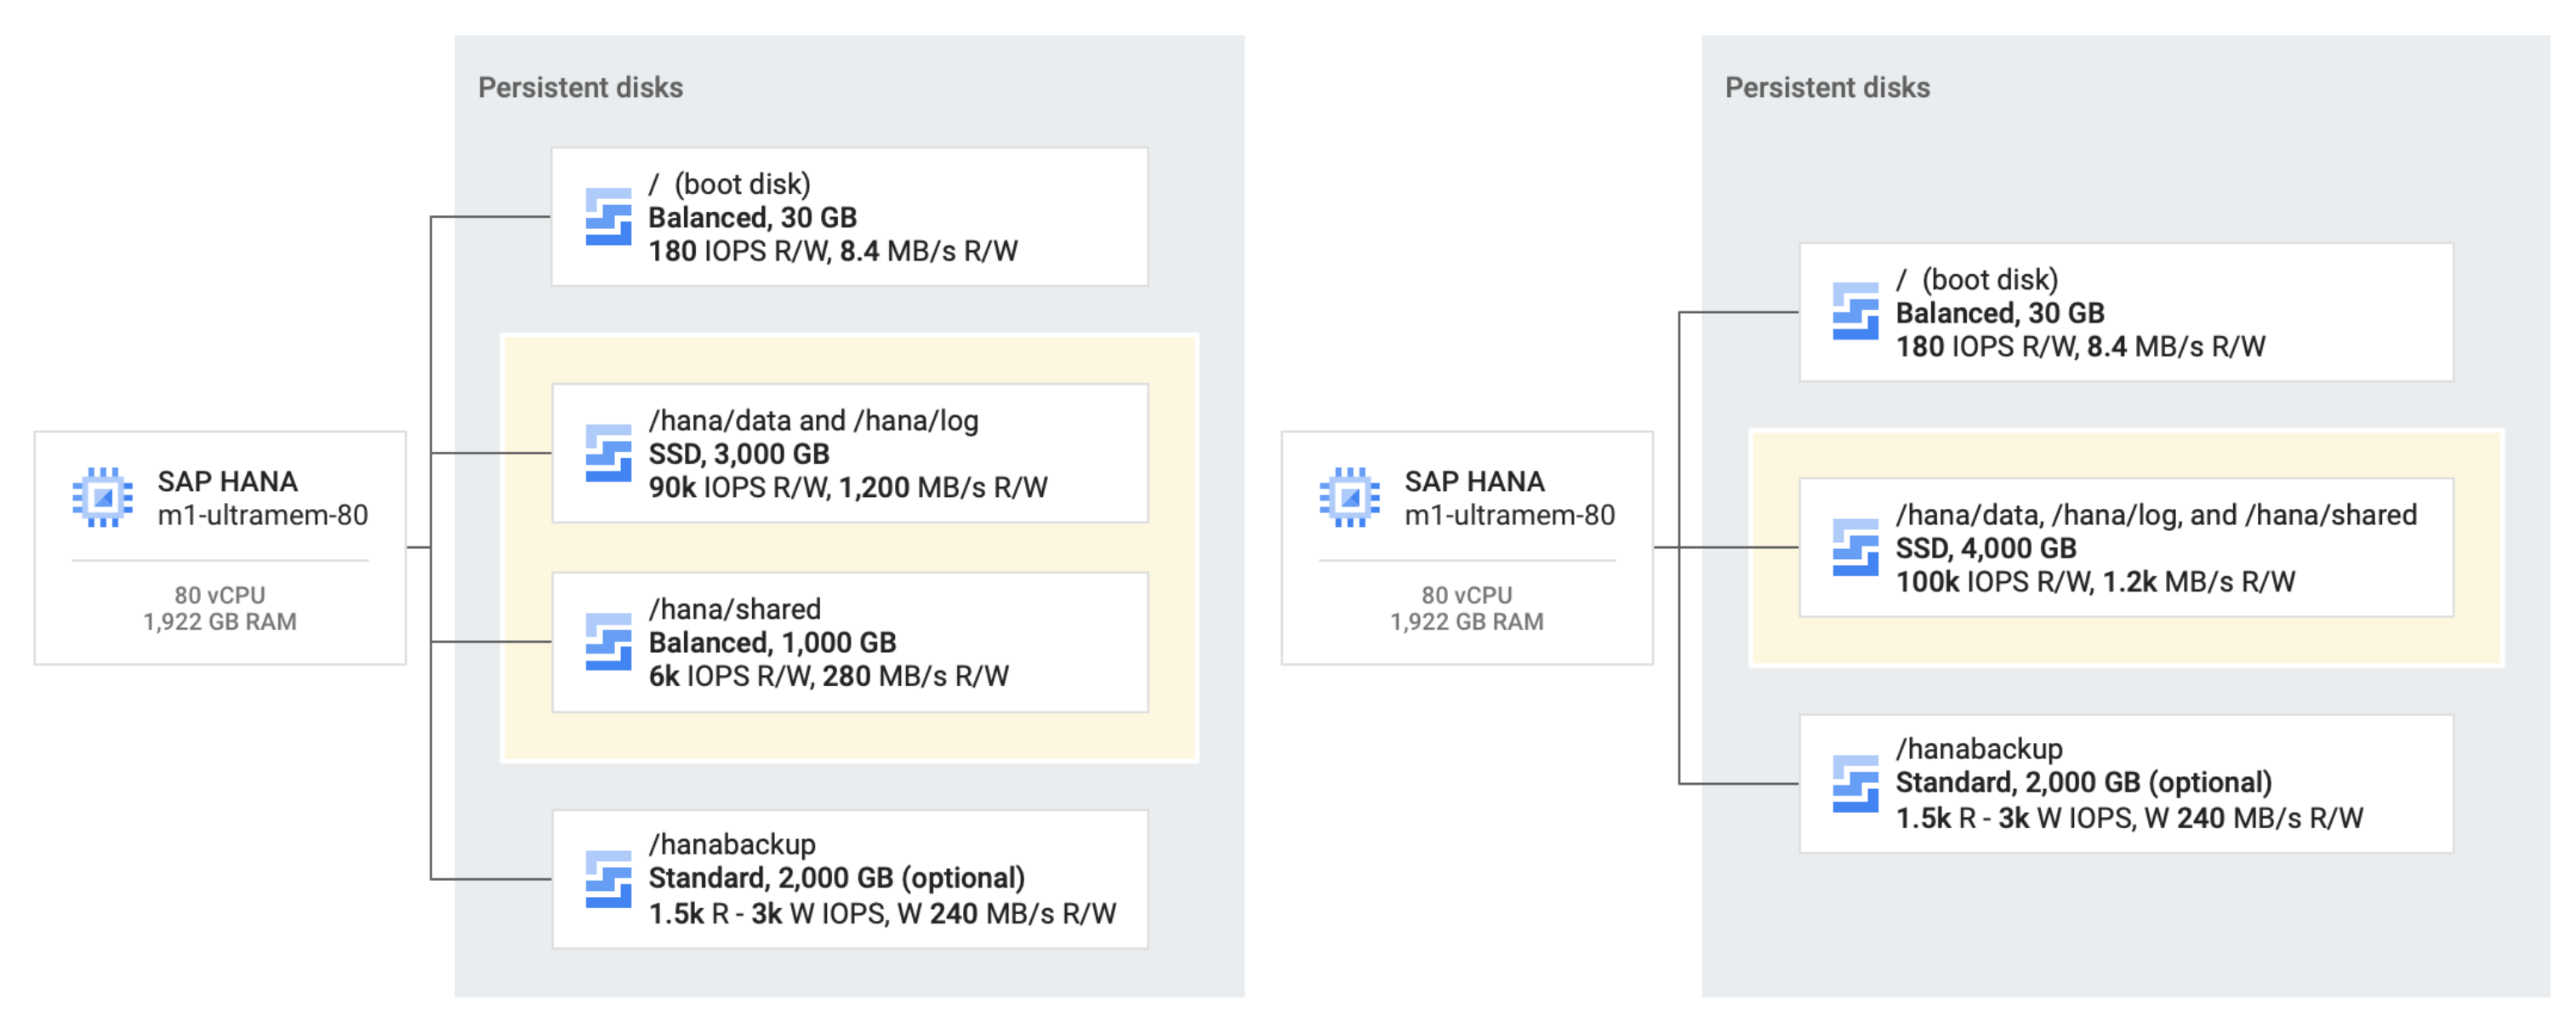 Two SAP HANA systems are shown: the left one has `/hana/shared` on its own balanced persistent disk and `/hana/data` and `/hana/log` on together on an SSD persistent disk. The other system has `/hana/data`, `/hana/log`, and `/hana/shared` together on a single SSD persistent disk, which is the recommended architecture.